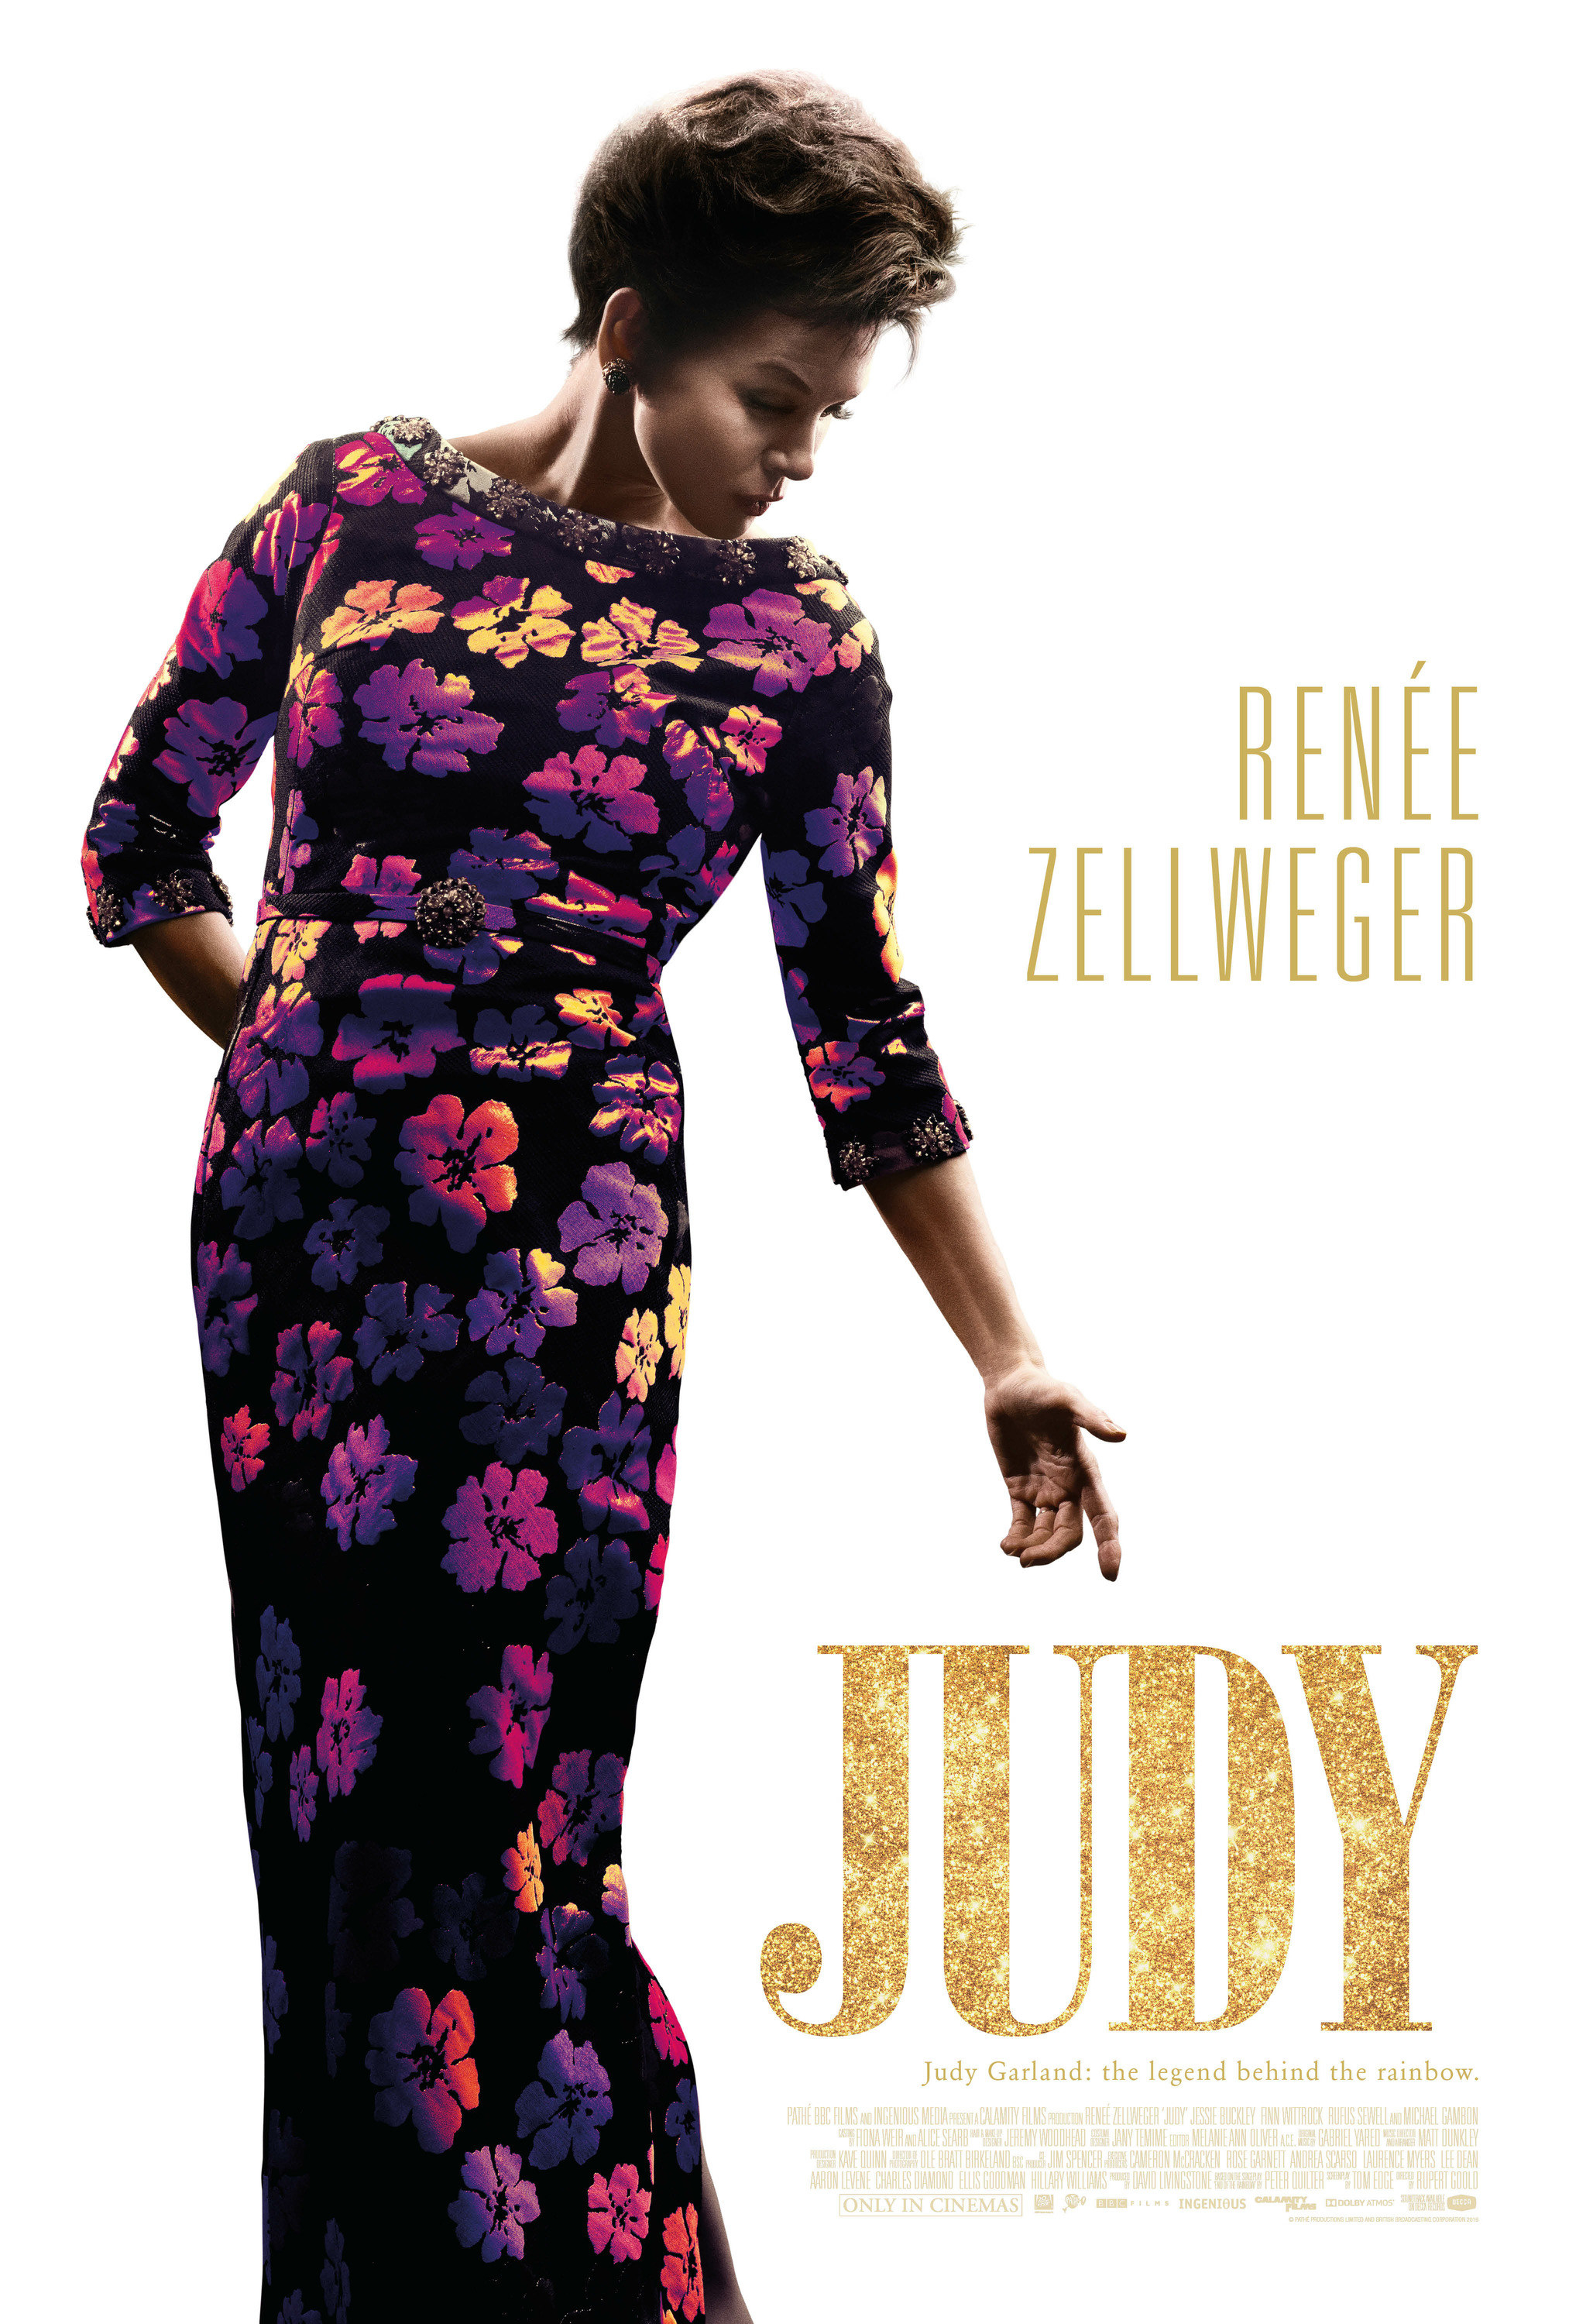 Judy Garland in a long sleeve dress on the film's poster